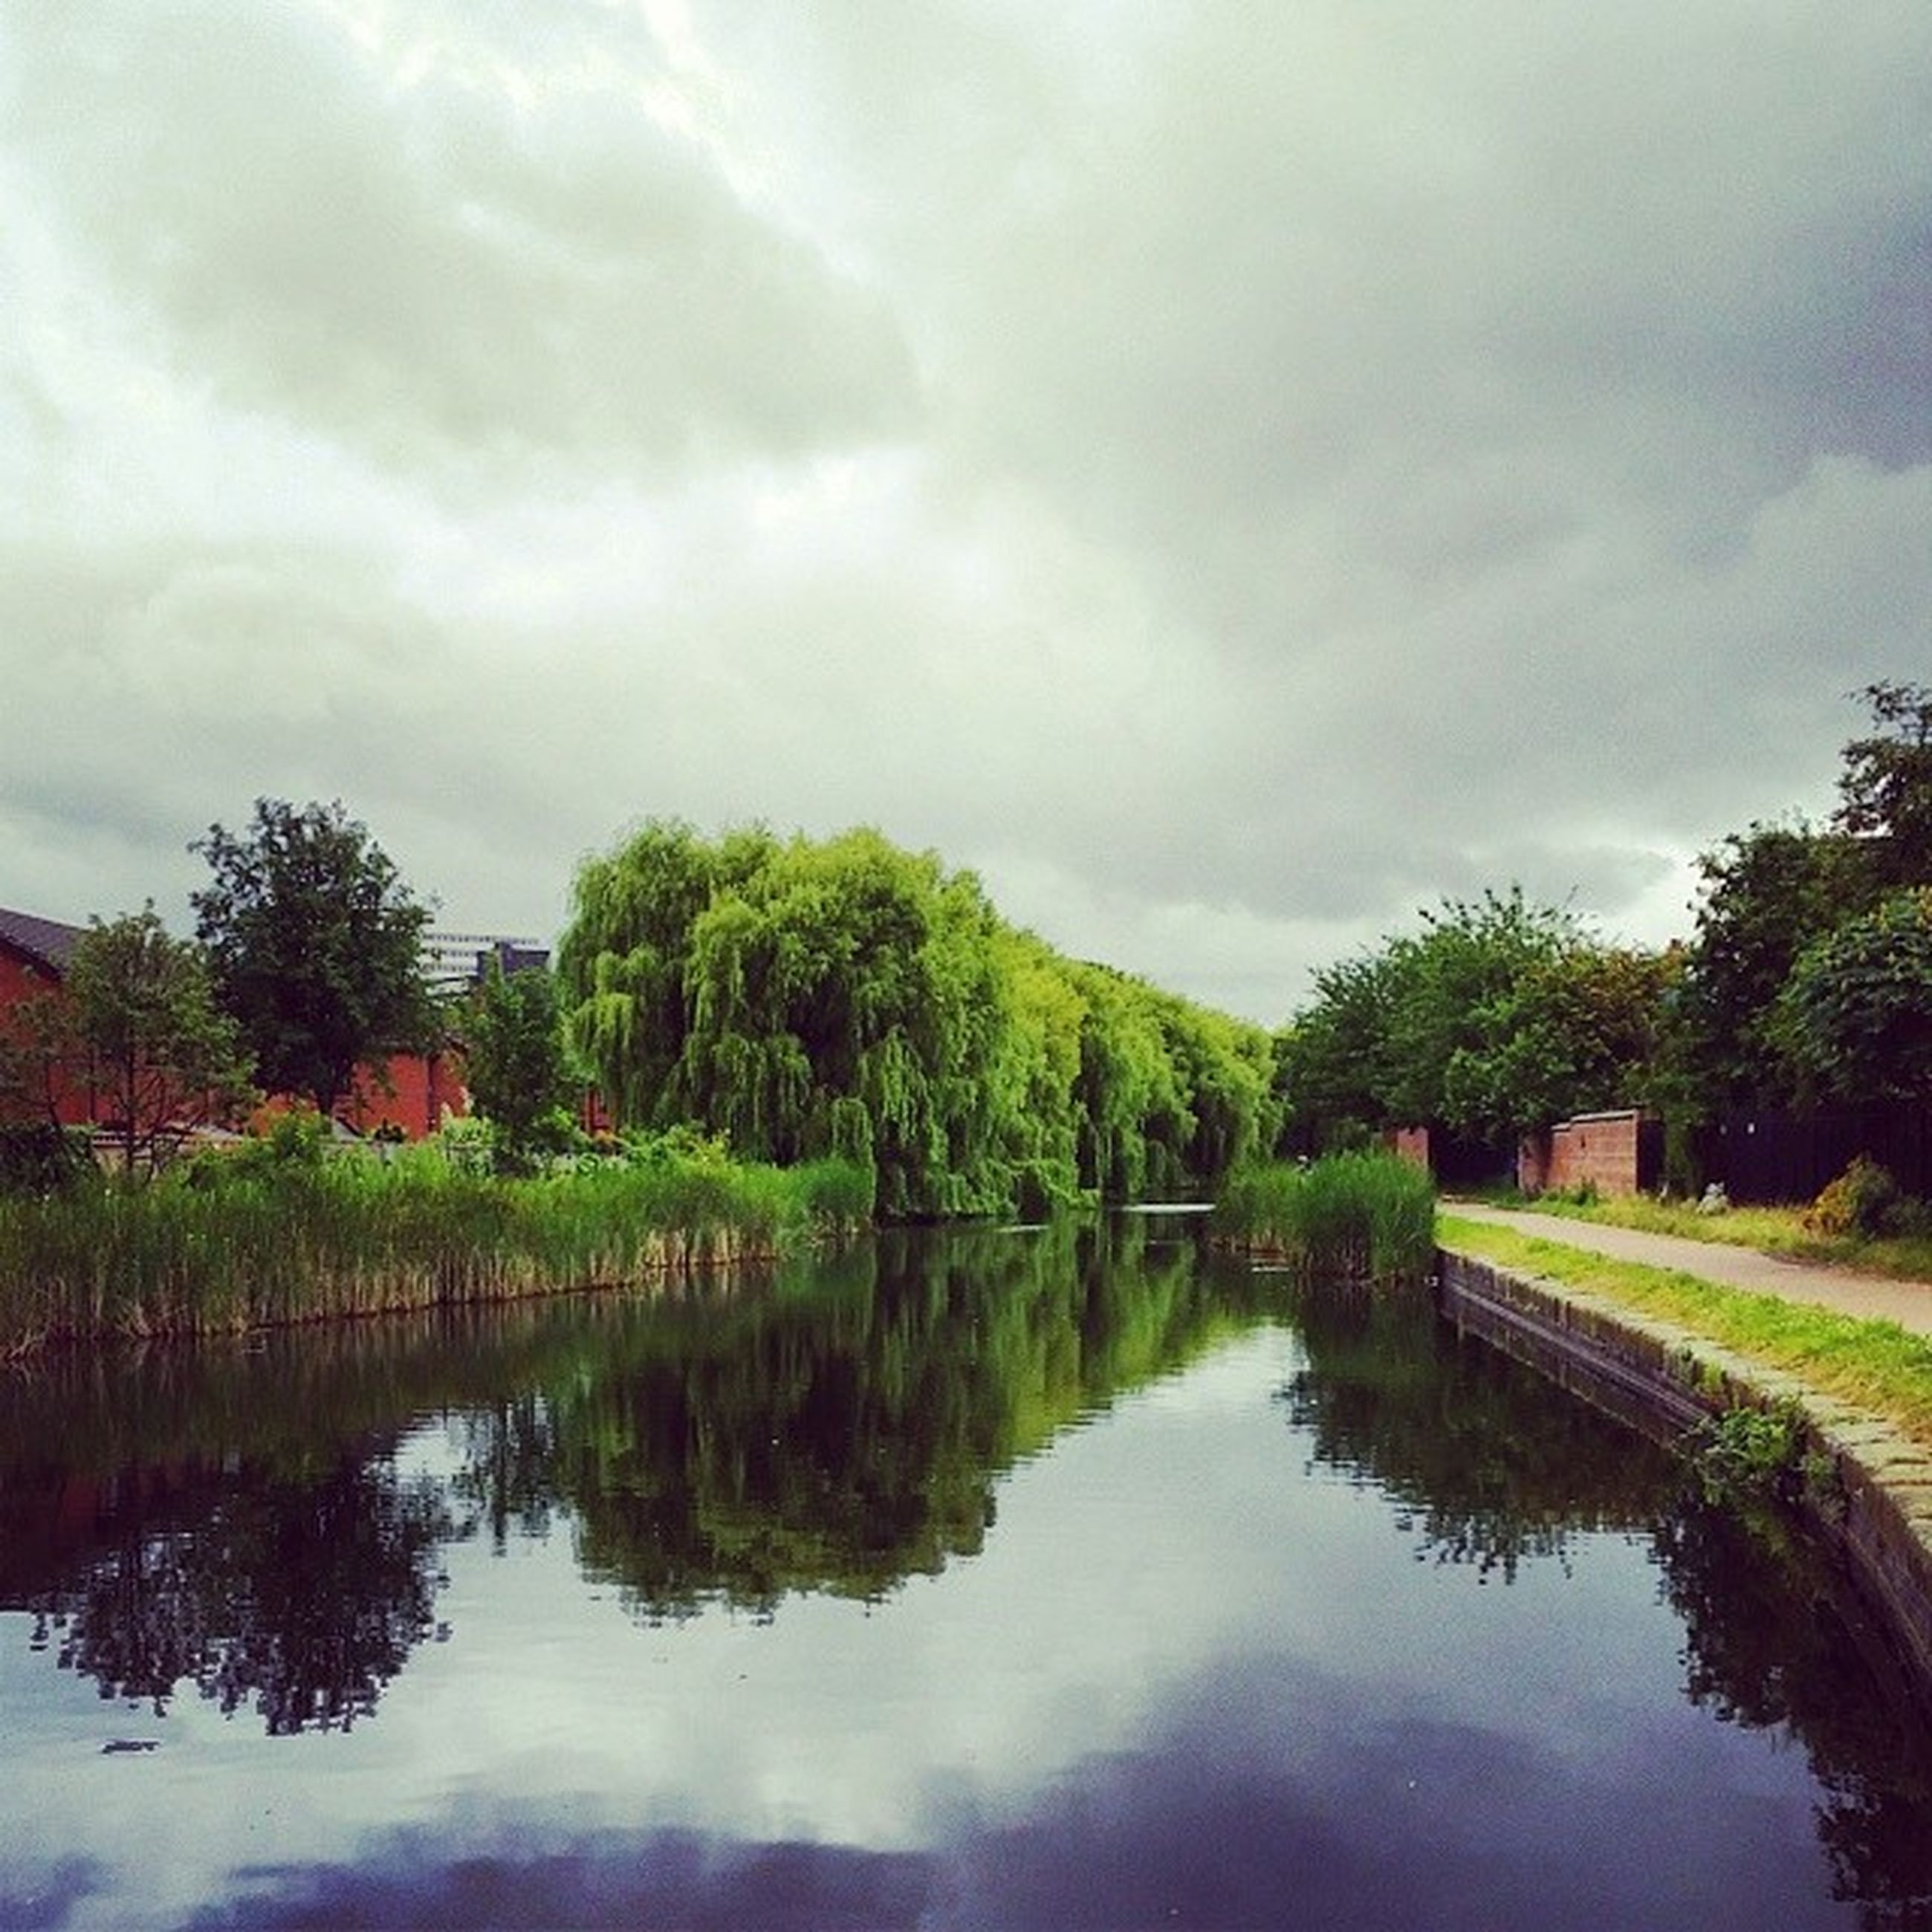 reflection, tree, water, sky, lake, tranquility, tranquil scene, cloud - sky, scenics, beauty in nature, waterfront, nature, cloudy, standing water, cloud, idyllic, growth, pond, green color, day